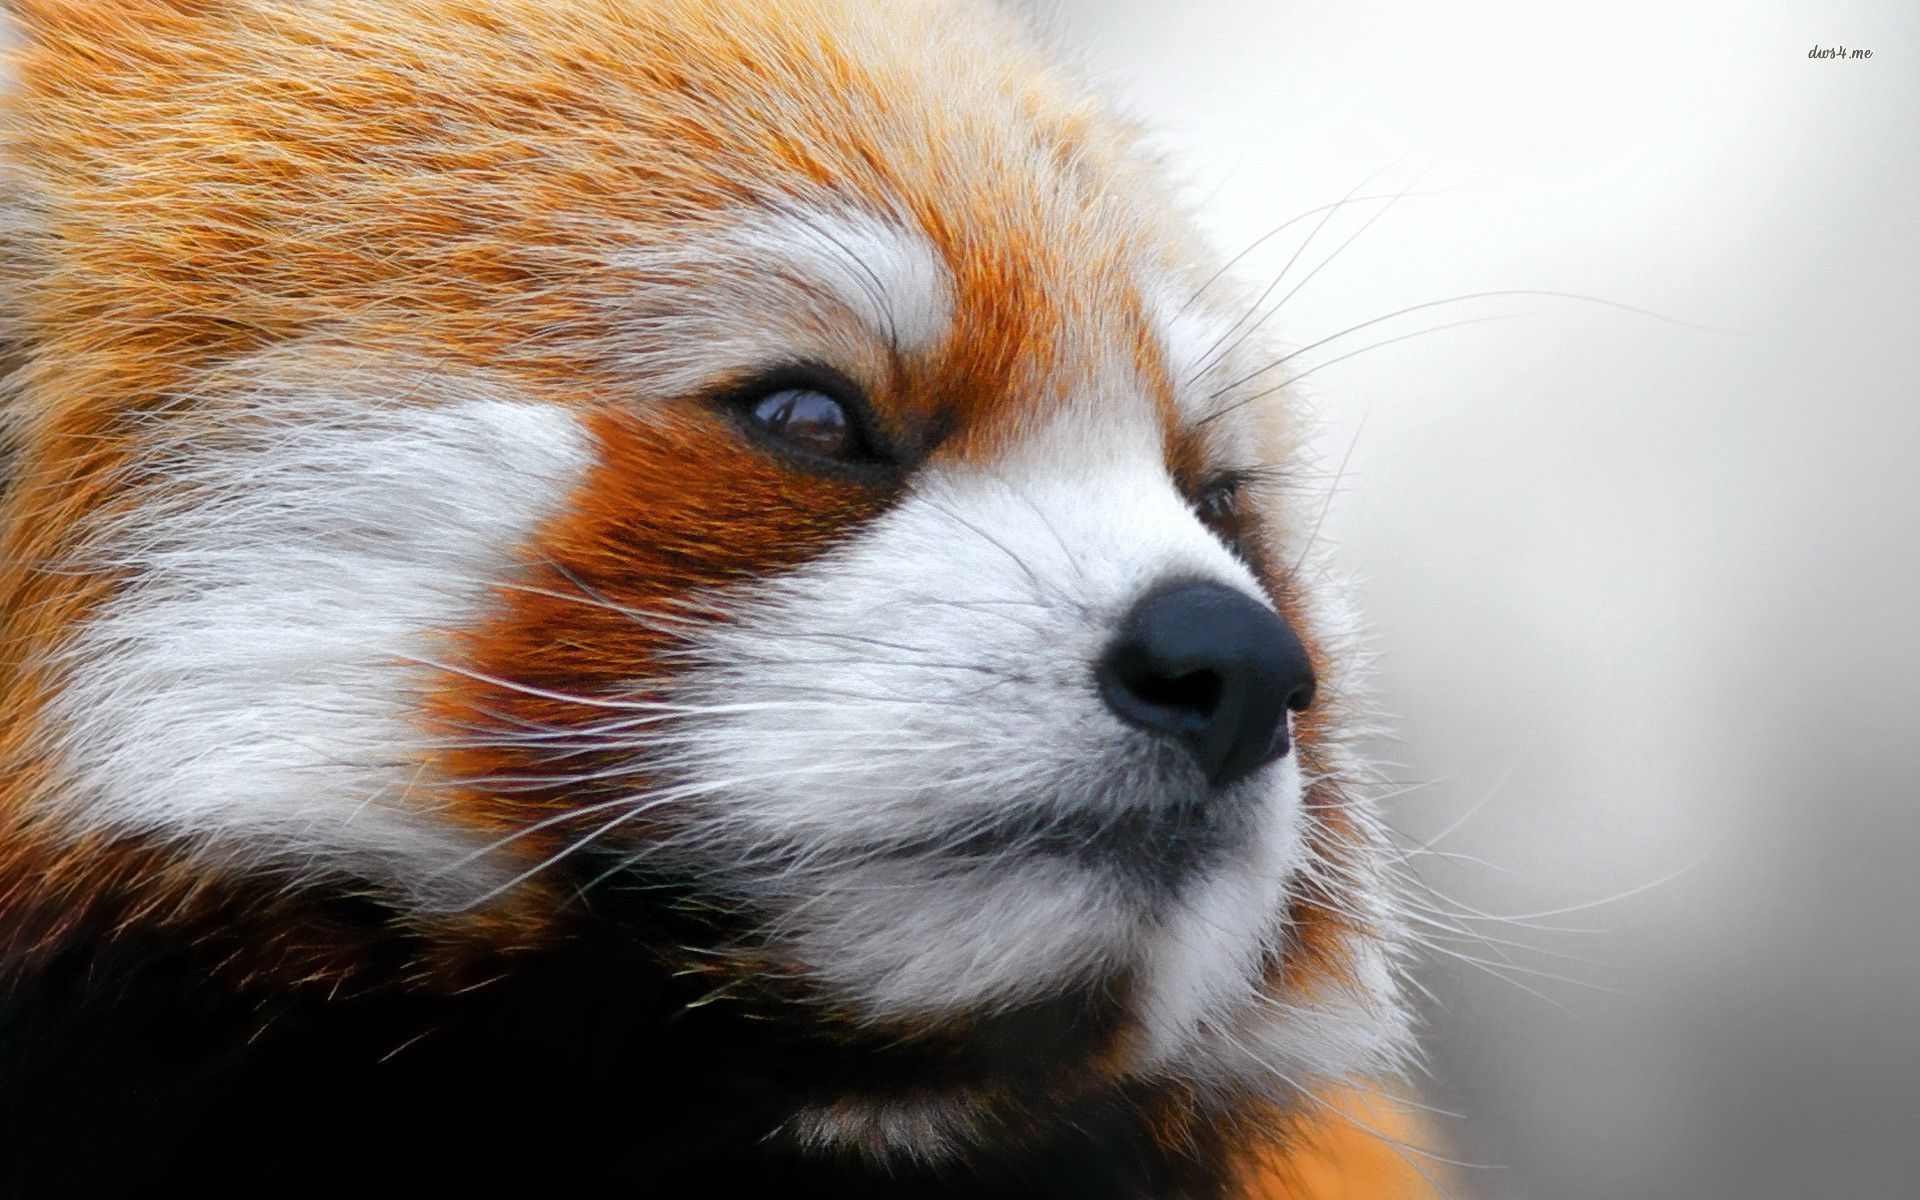 23878-red-panda-1920x1200-animal-wallpaper.jpg